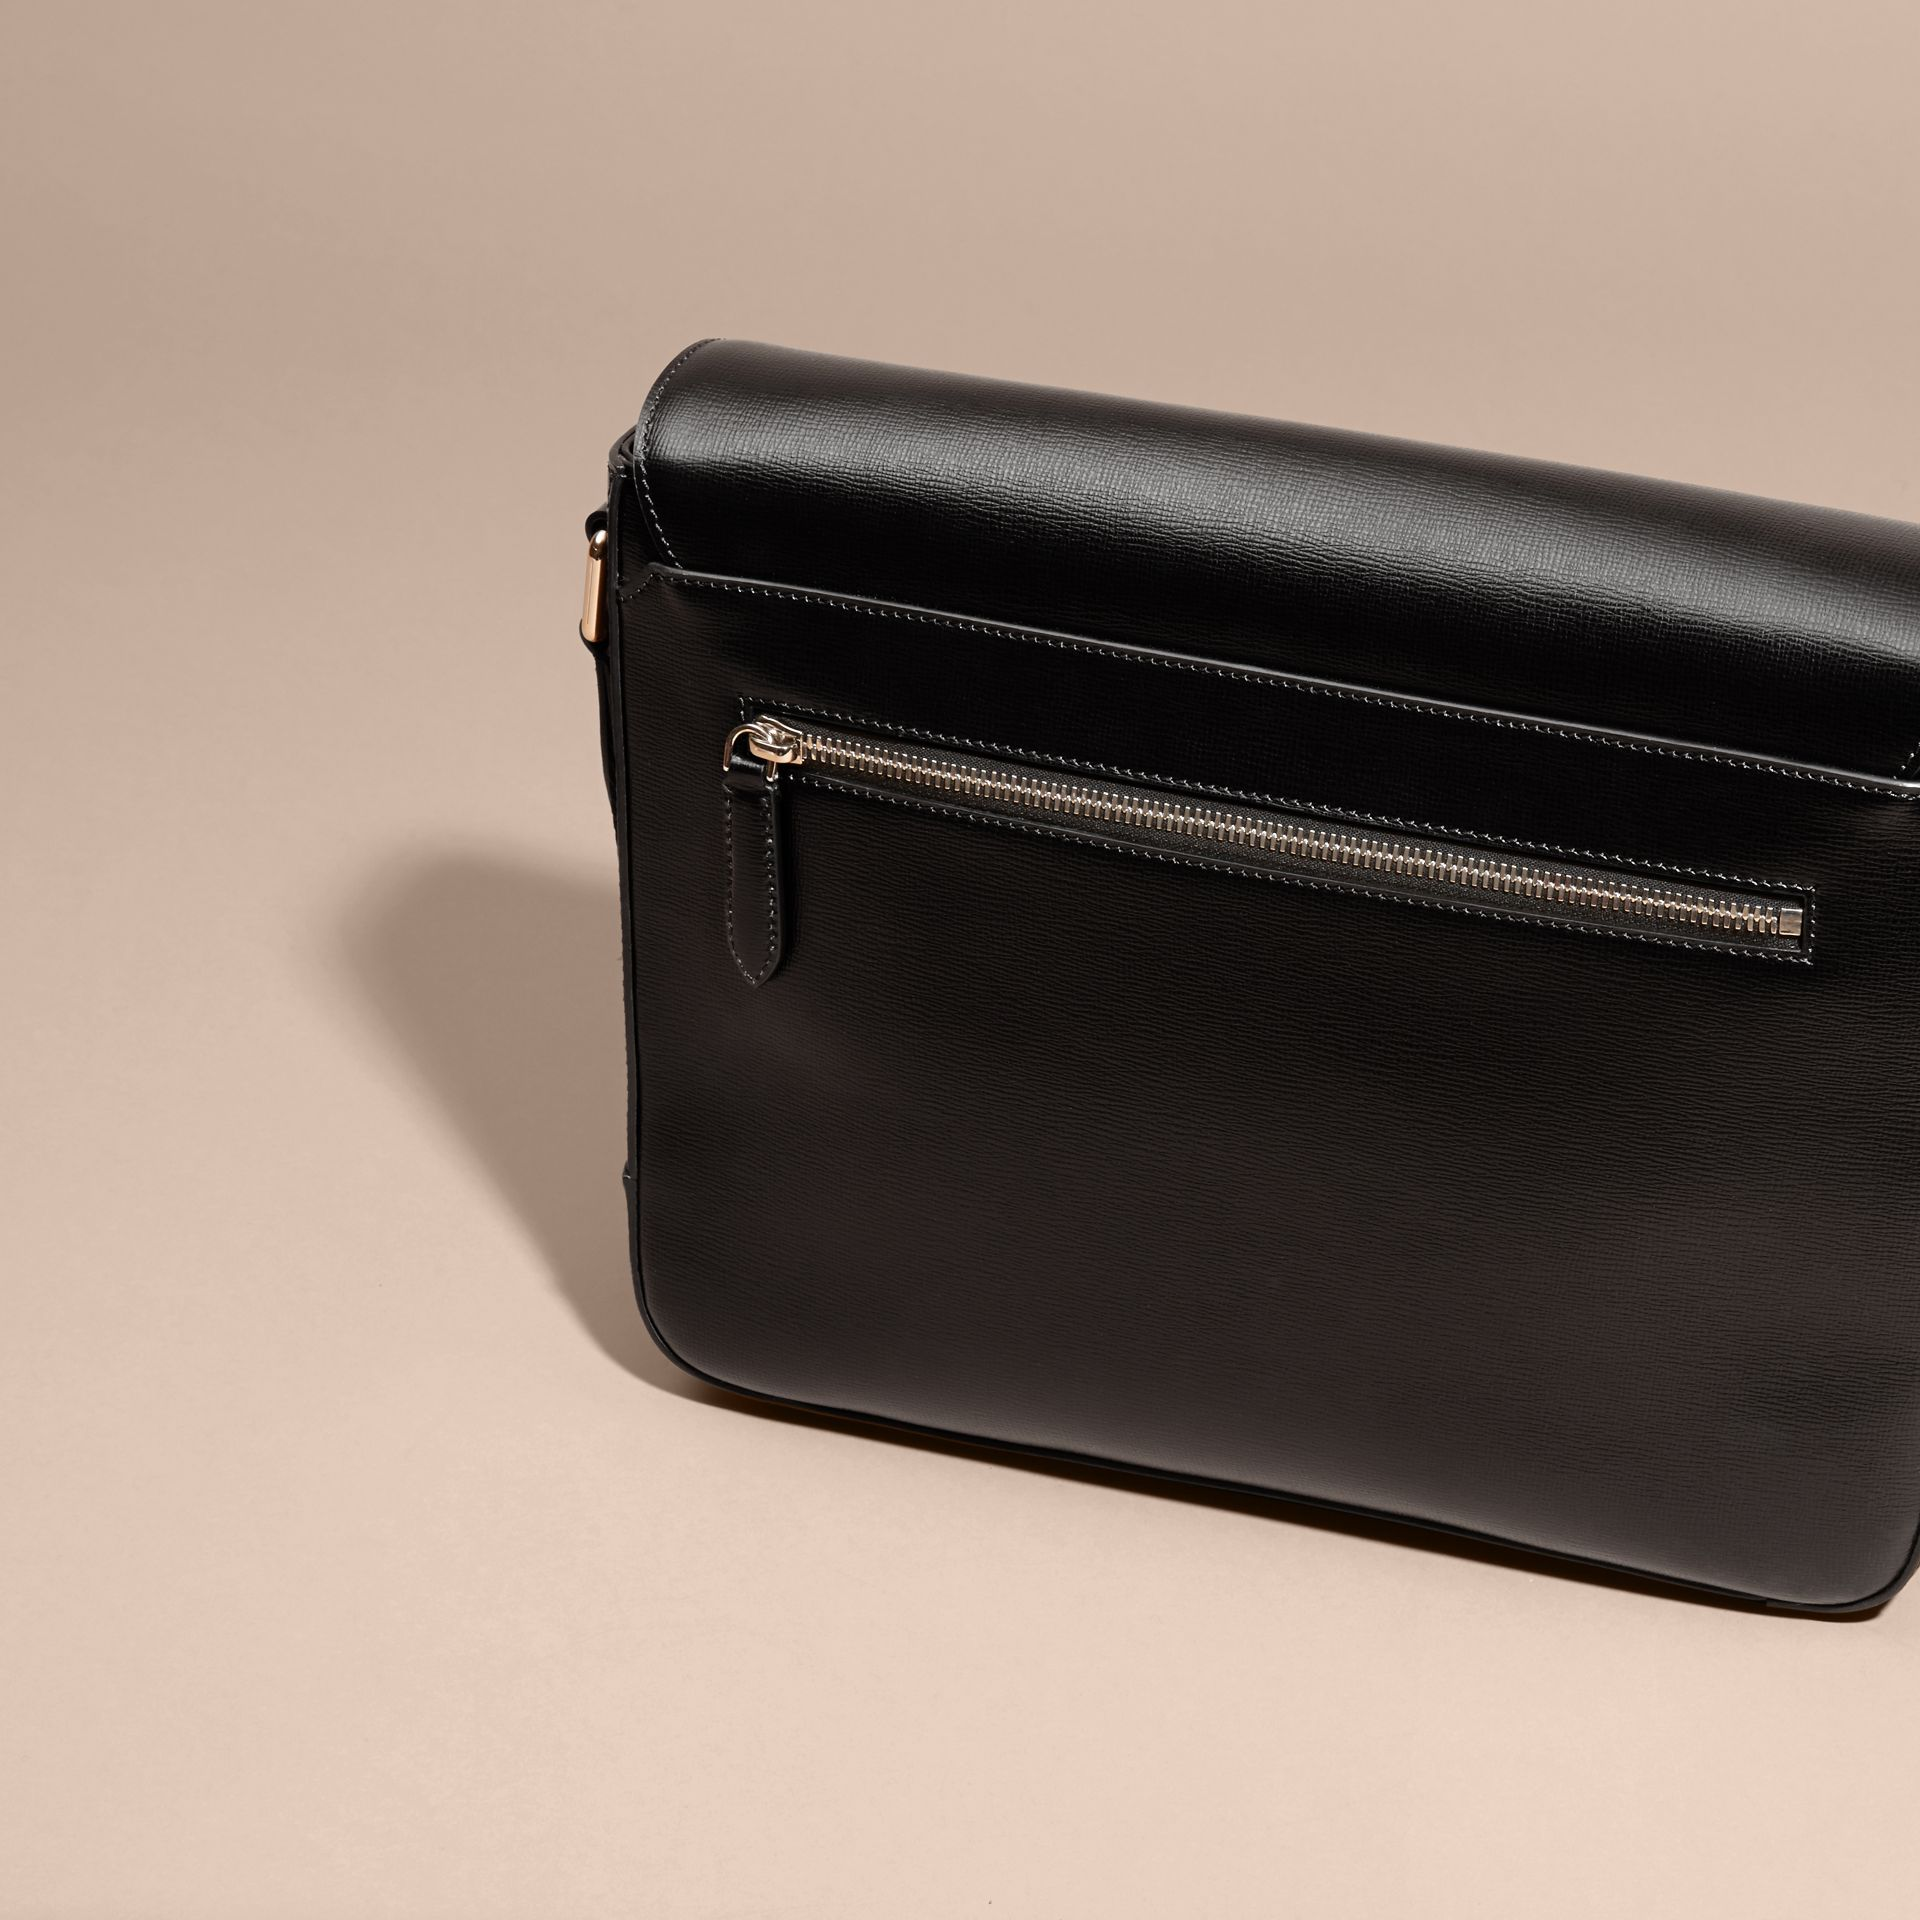 Medium London Leather Messenger Bag in Black - gallery image 4